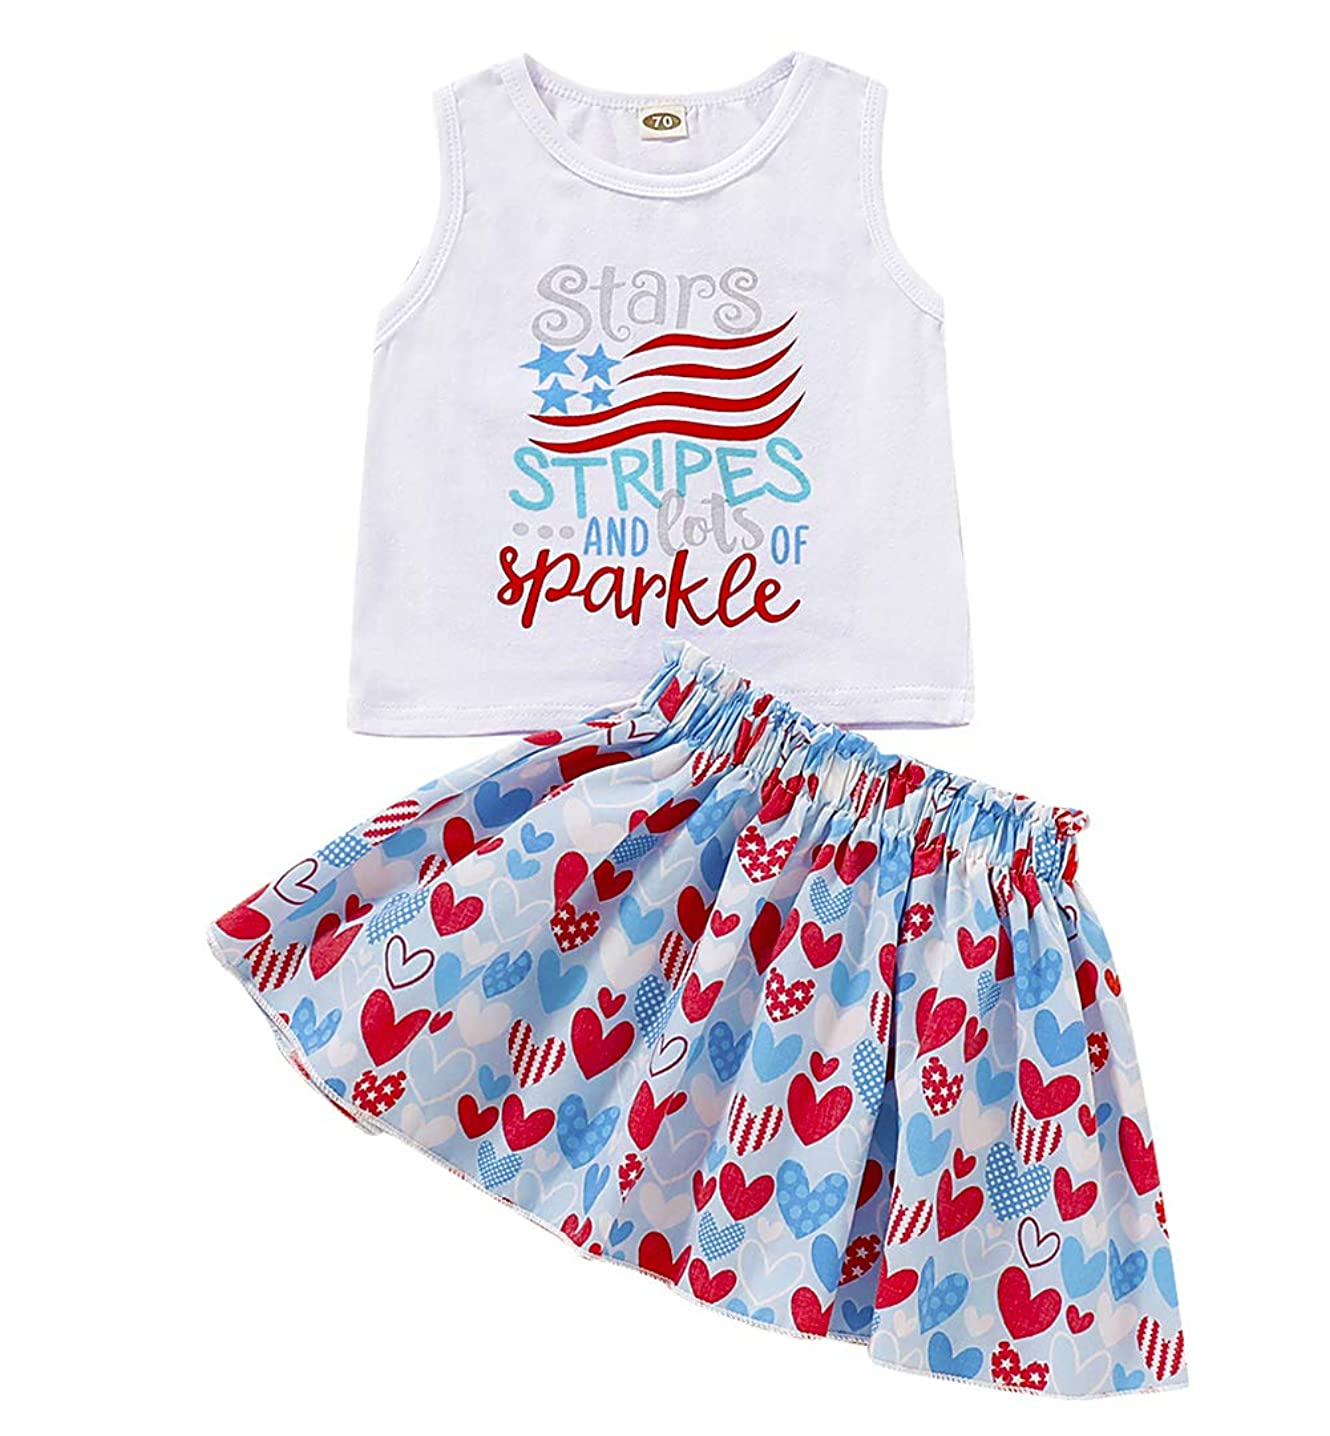 SWNONE Toddler Kids Girl 4th of July Baby Girl Skirt Outfit American Flag Vest Top+ Heart Skirt Set